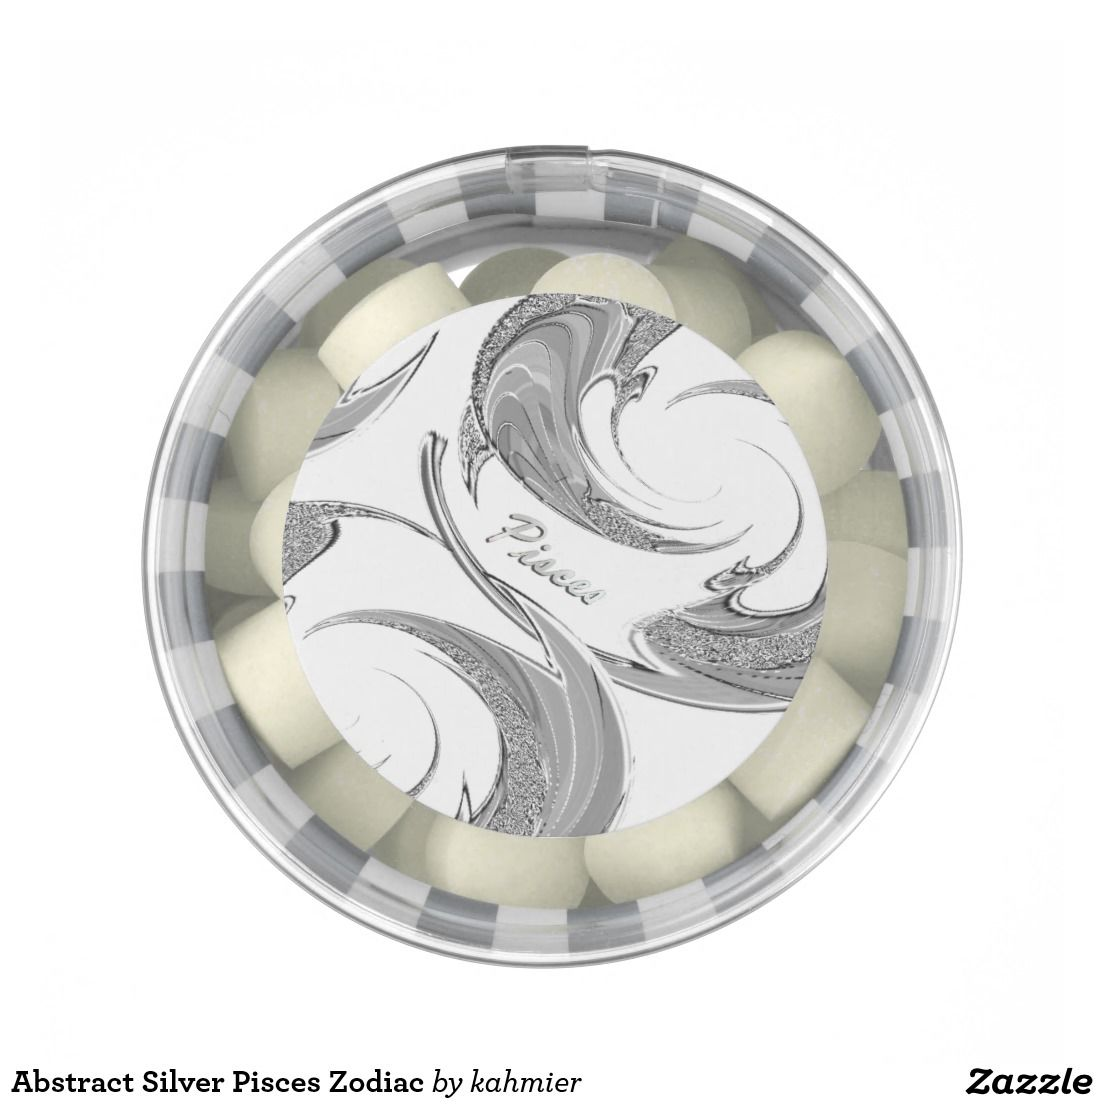 Abstract Silver Pisces Zodiac Gum  20% off and 50% off express shipping